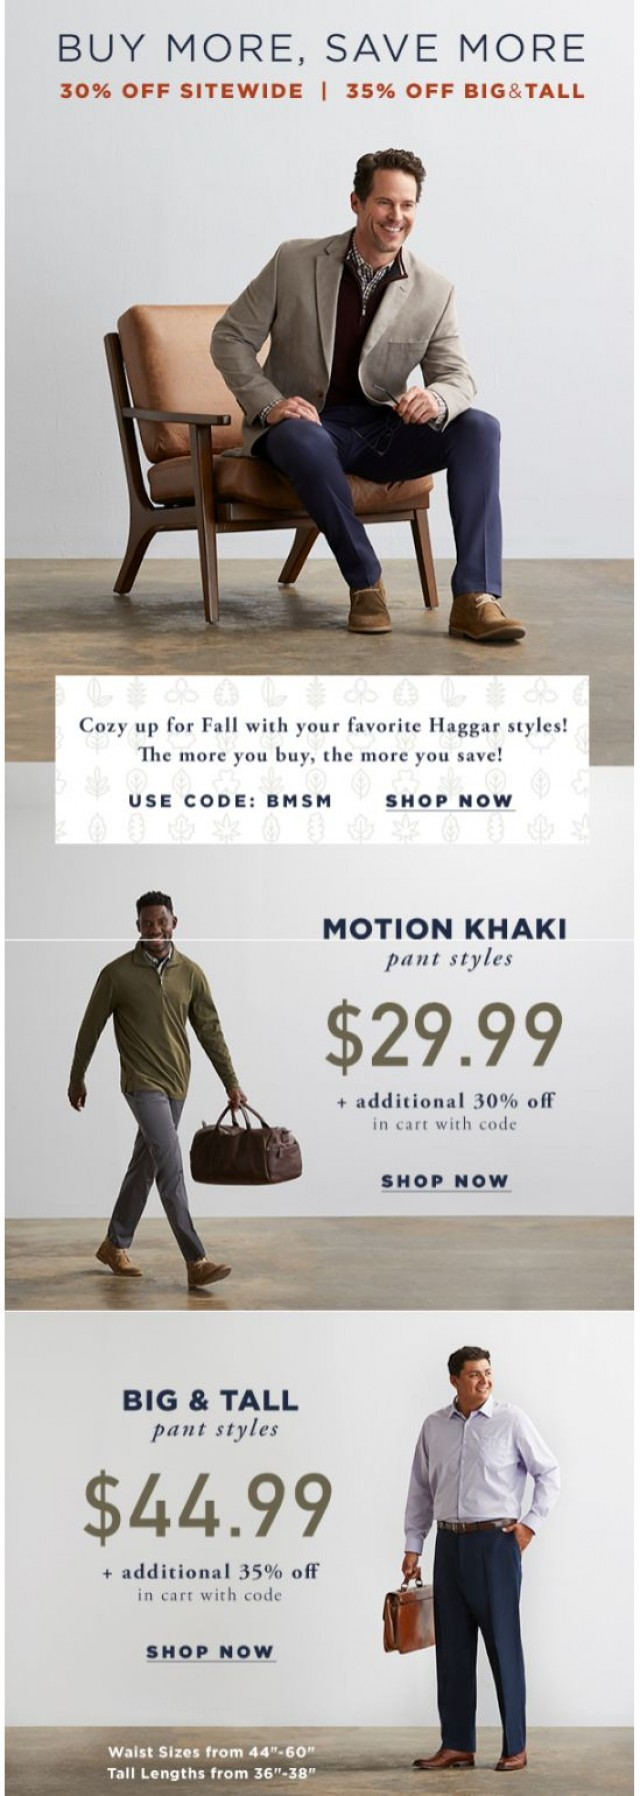 Coupon for: Haggar - Buy More, Save More! Get 30% Off Sitewide